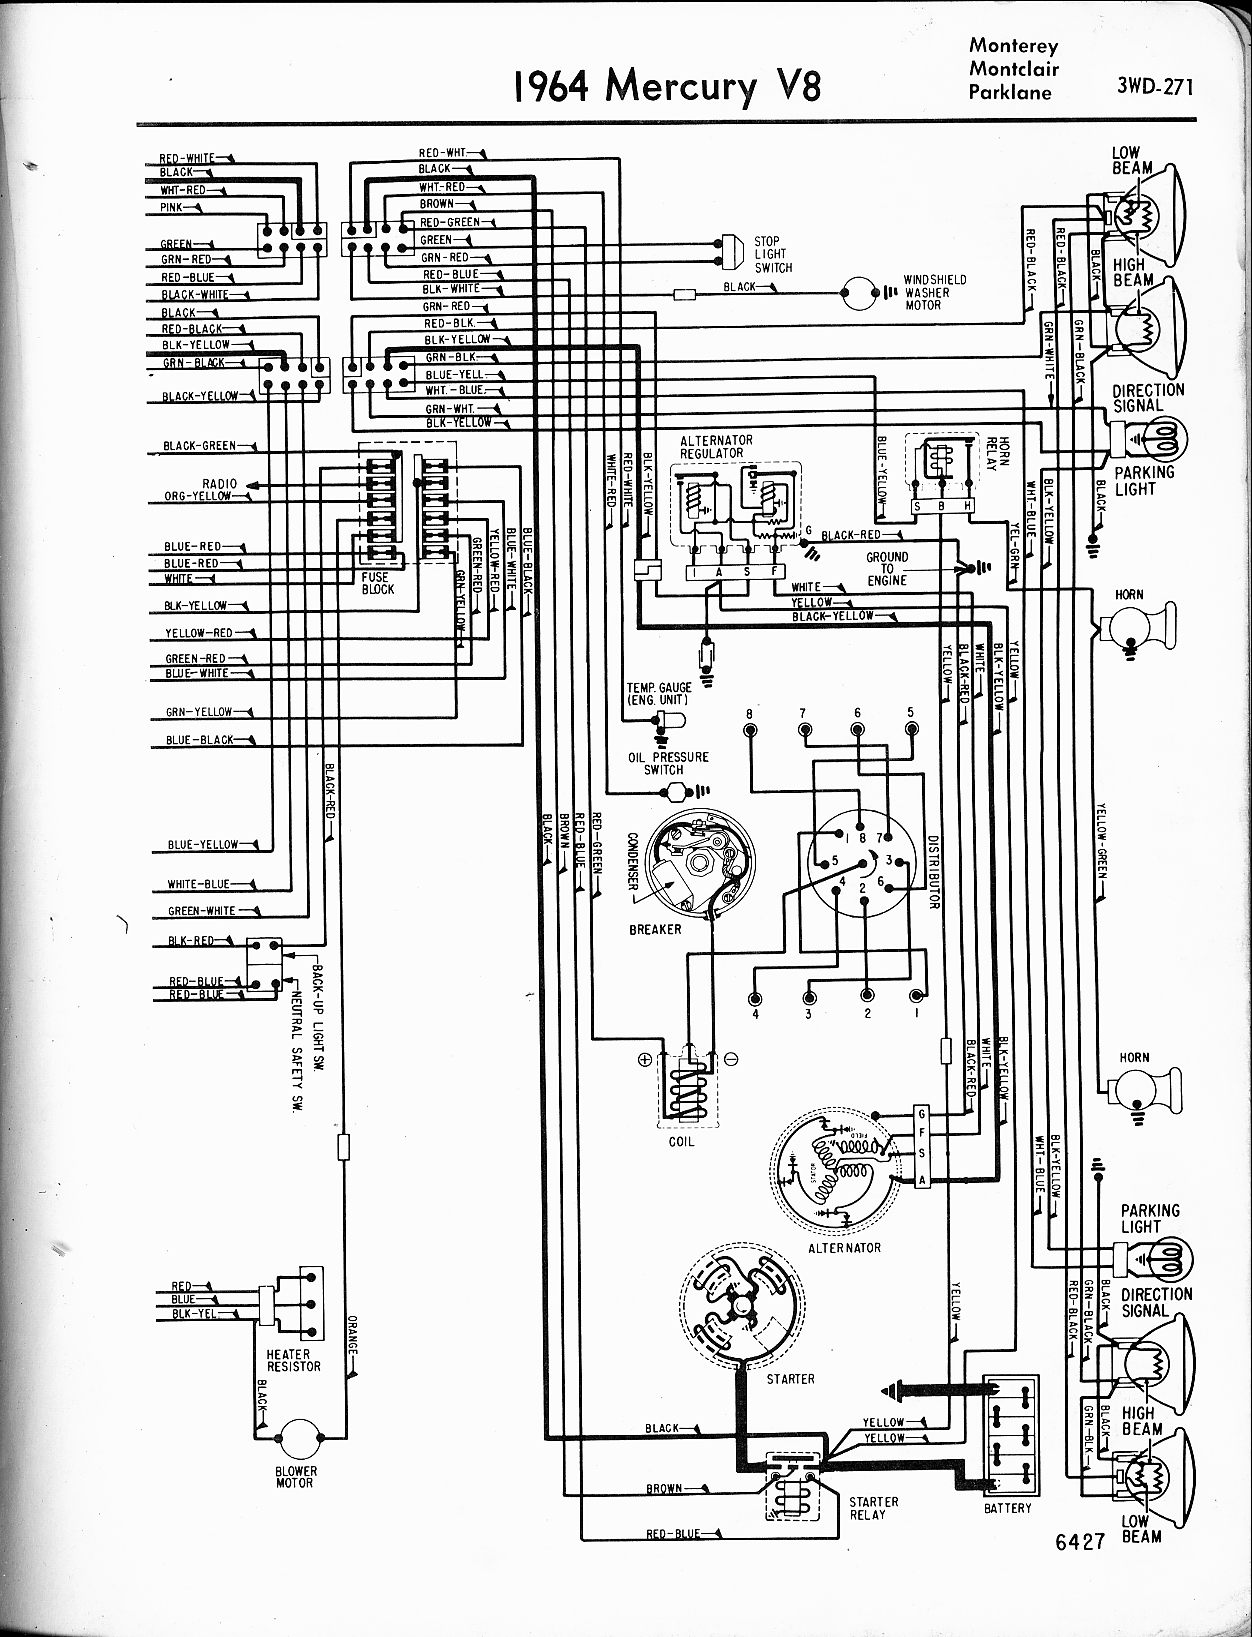 MWire5765 271 mercury wiring diagrams the old car manual project 63 falcon wiring diagram at reclaimingppi.co